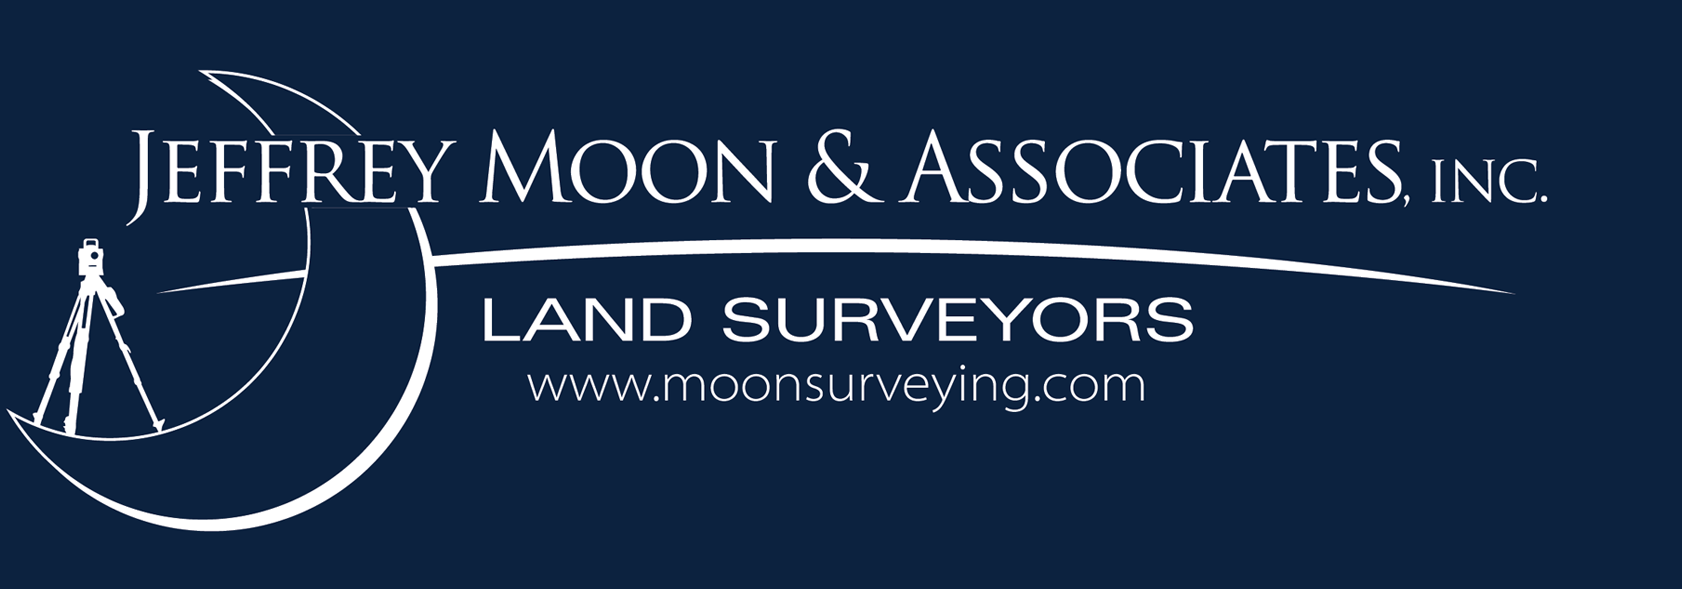 Jeffrey Moon & Associates